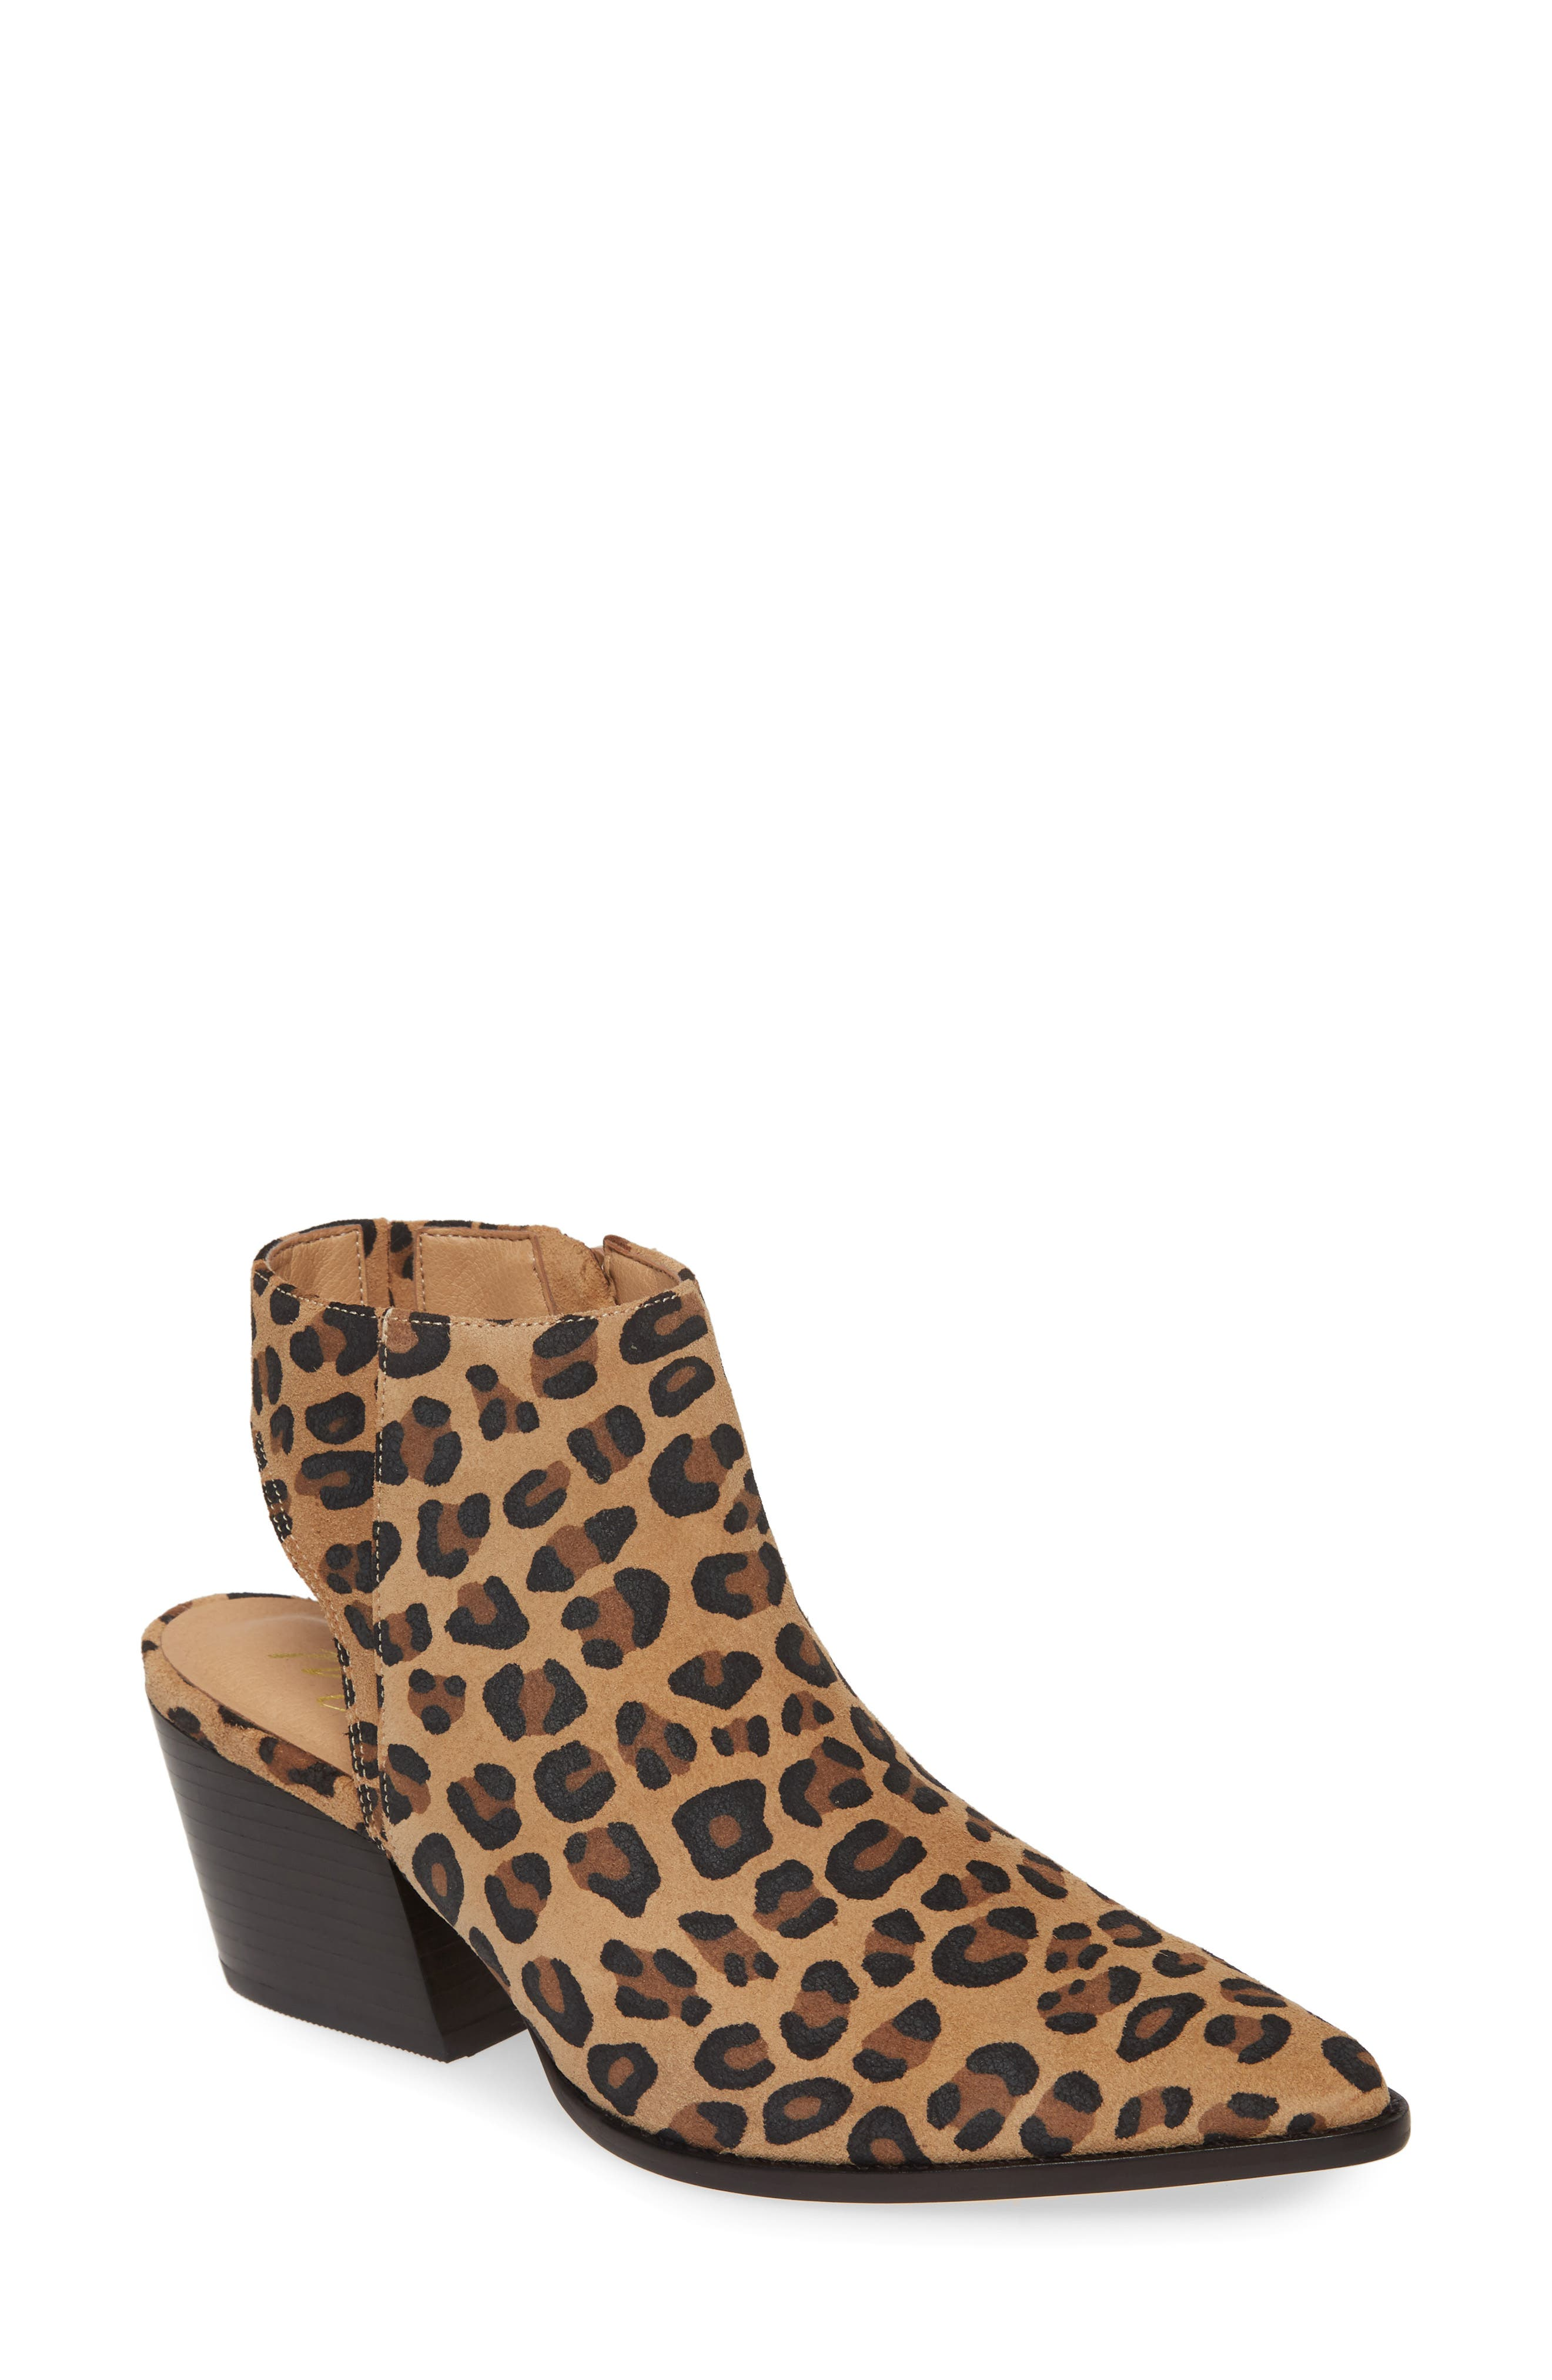 Matisse Odie Cutout Pointed Toe Boot, Brown